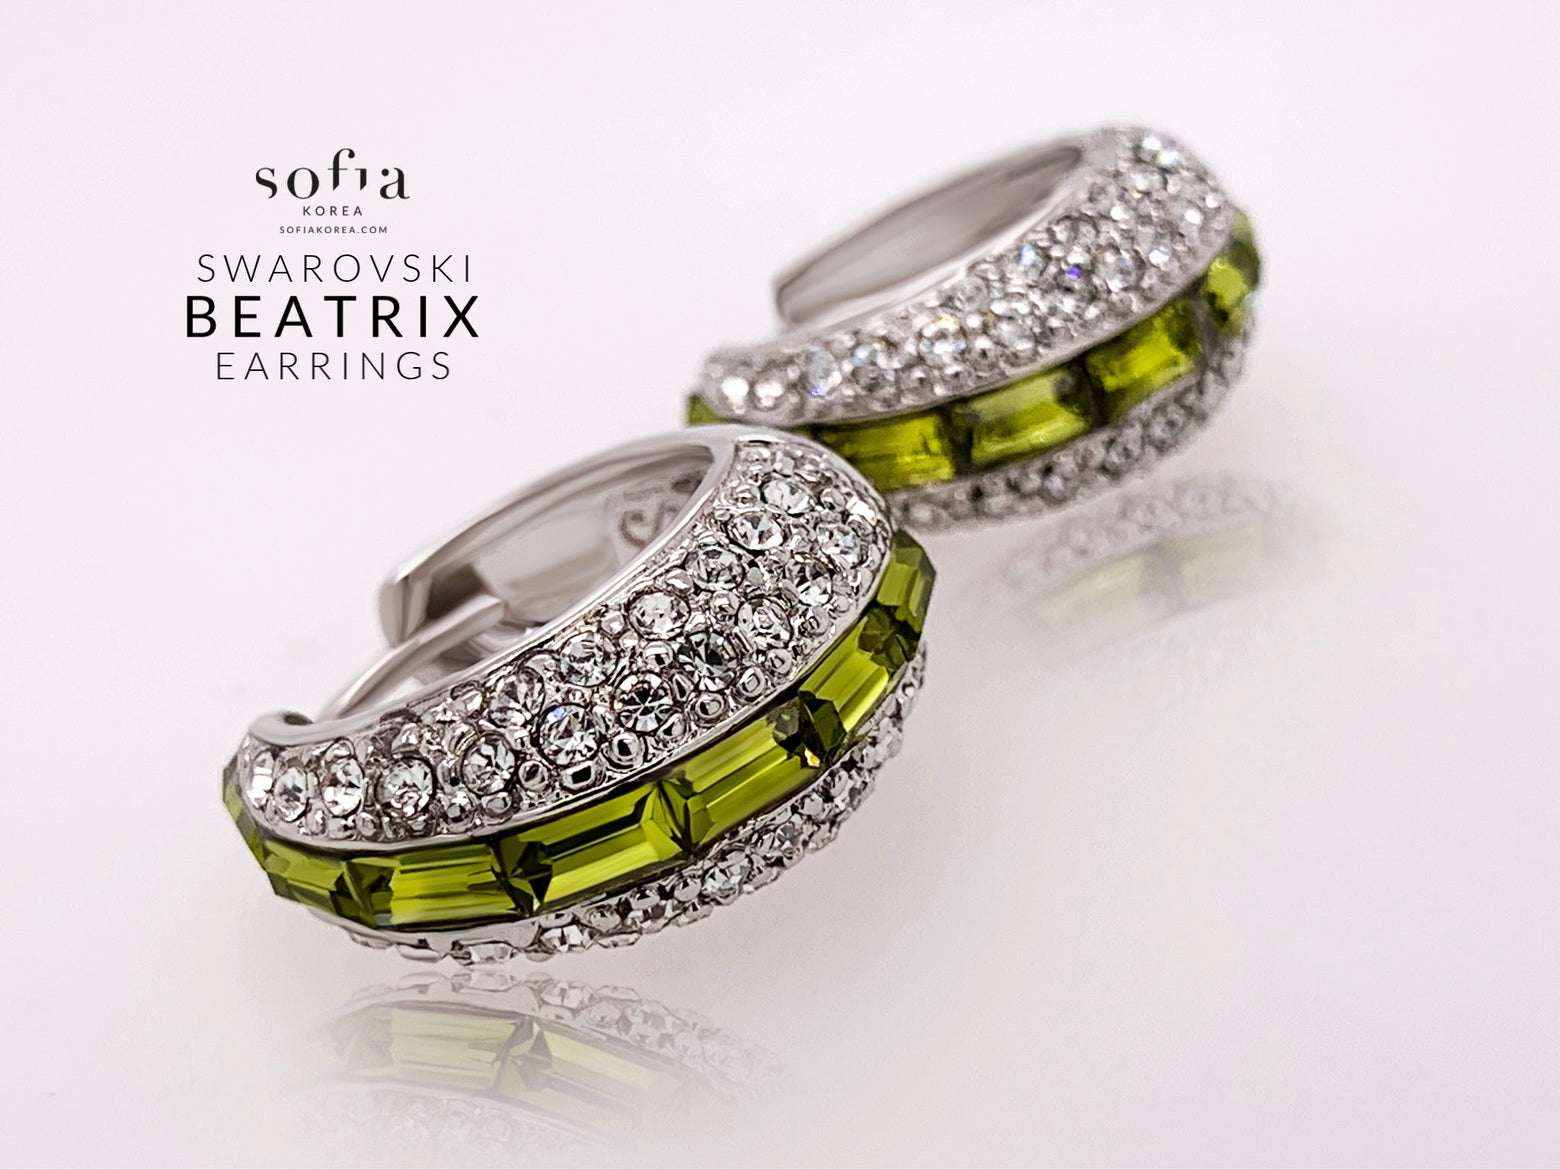 Beatrix Earrings - Sofiakorea